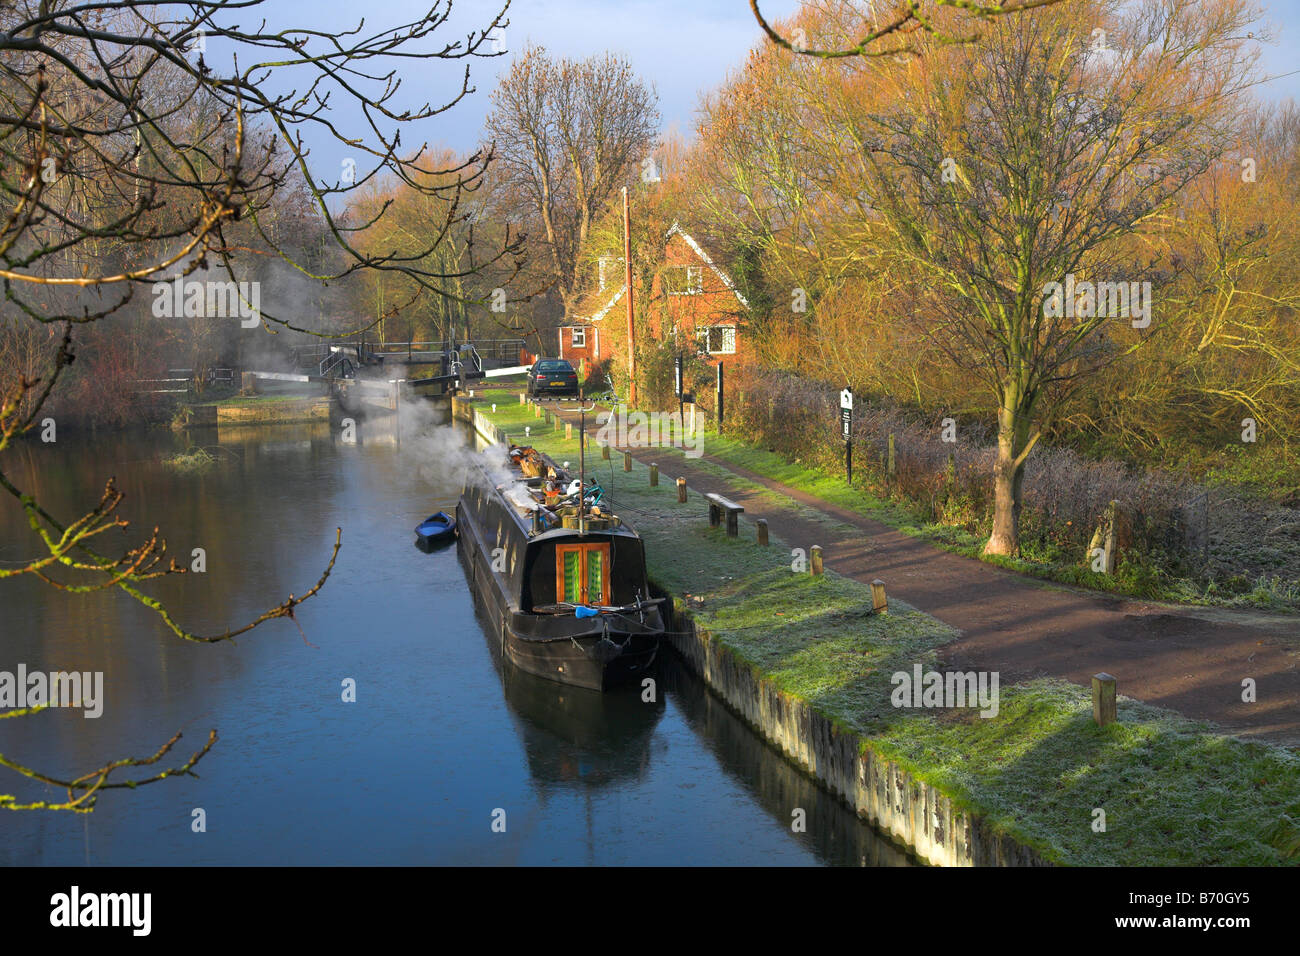 Narrowboat with smoking chimney on a cold winters morning. - Stock Image